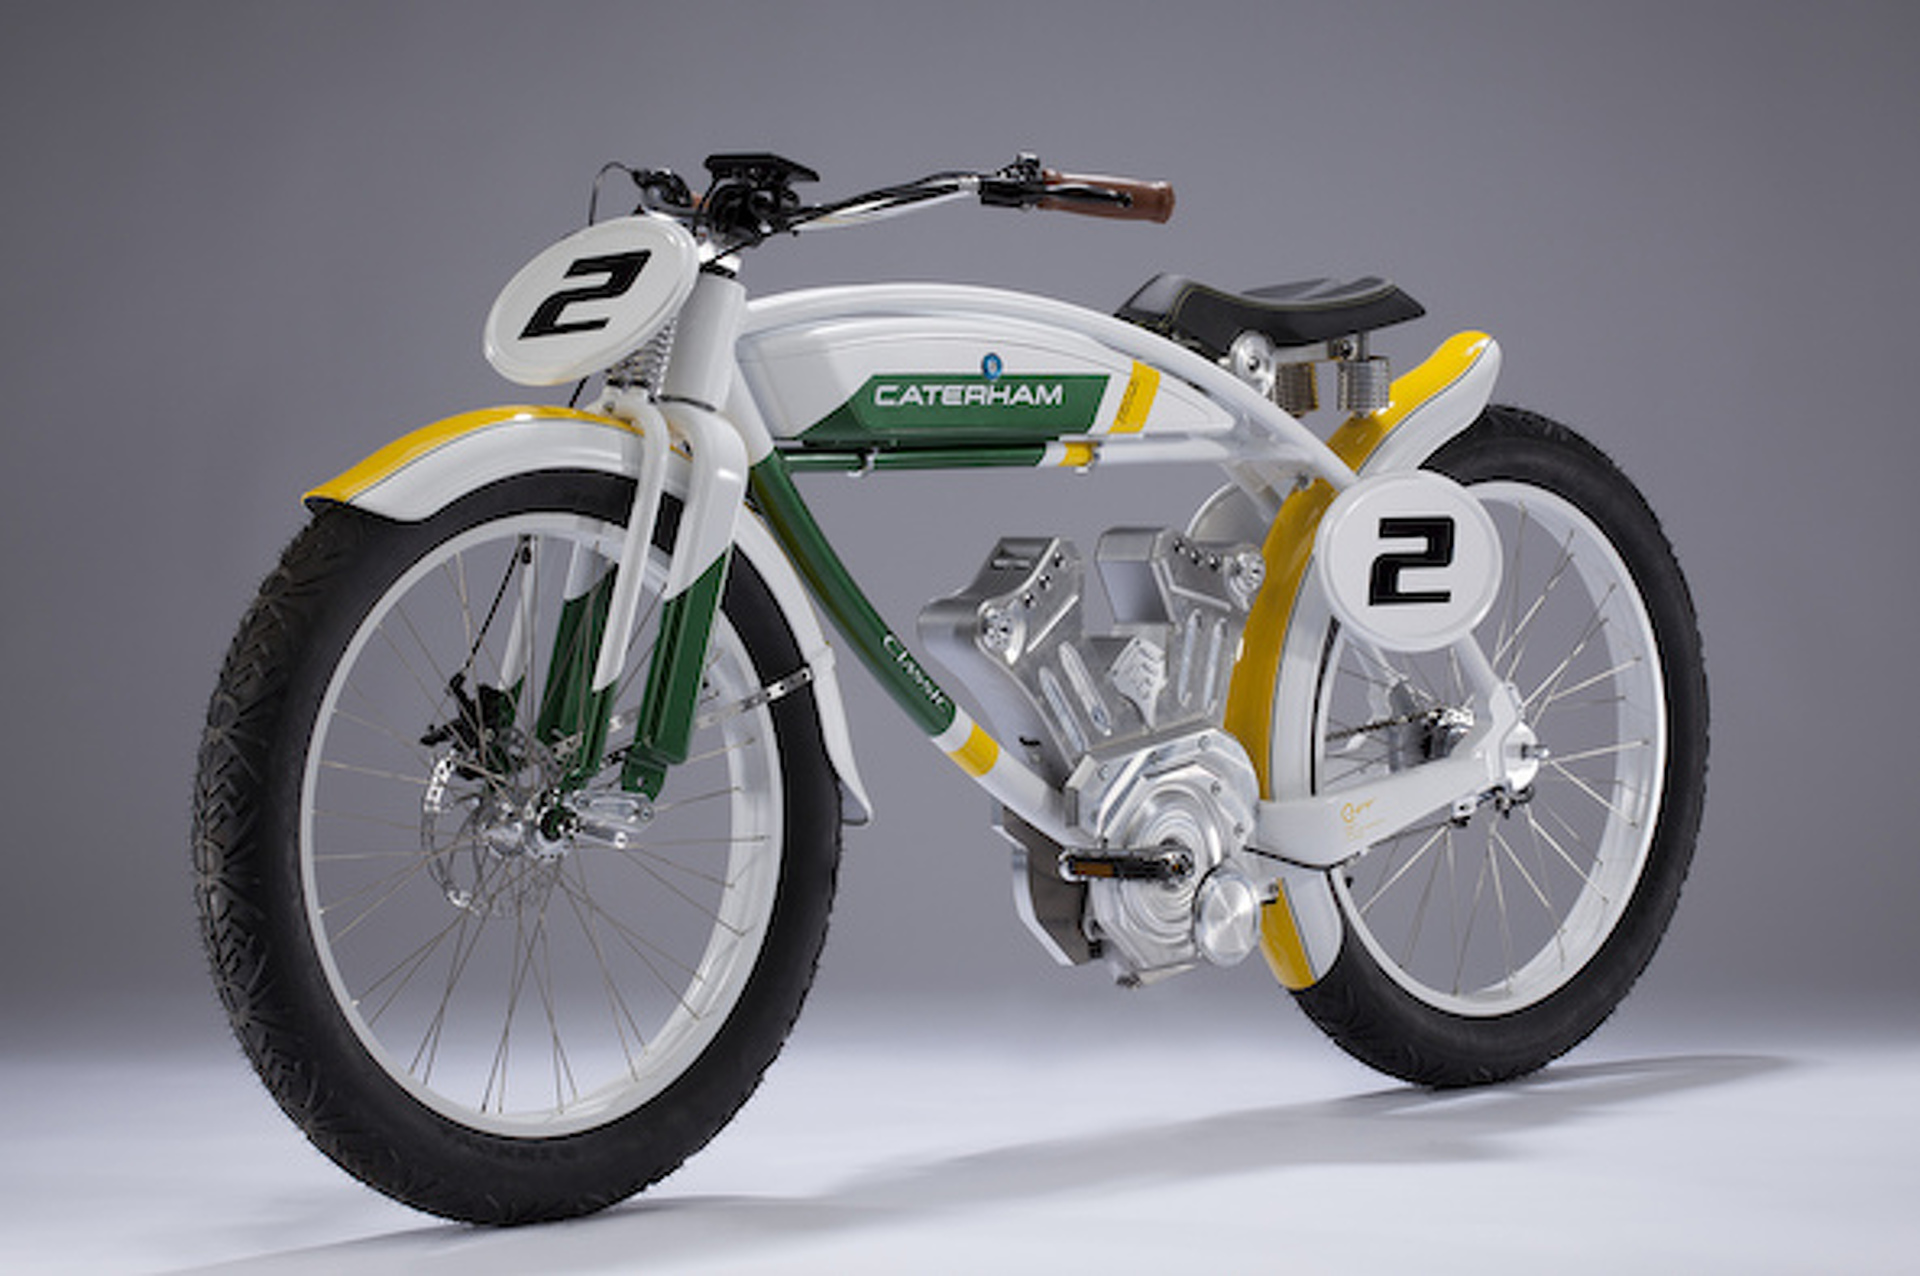 Caterham Electric Bicycle is So Cool in So Many Ways